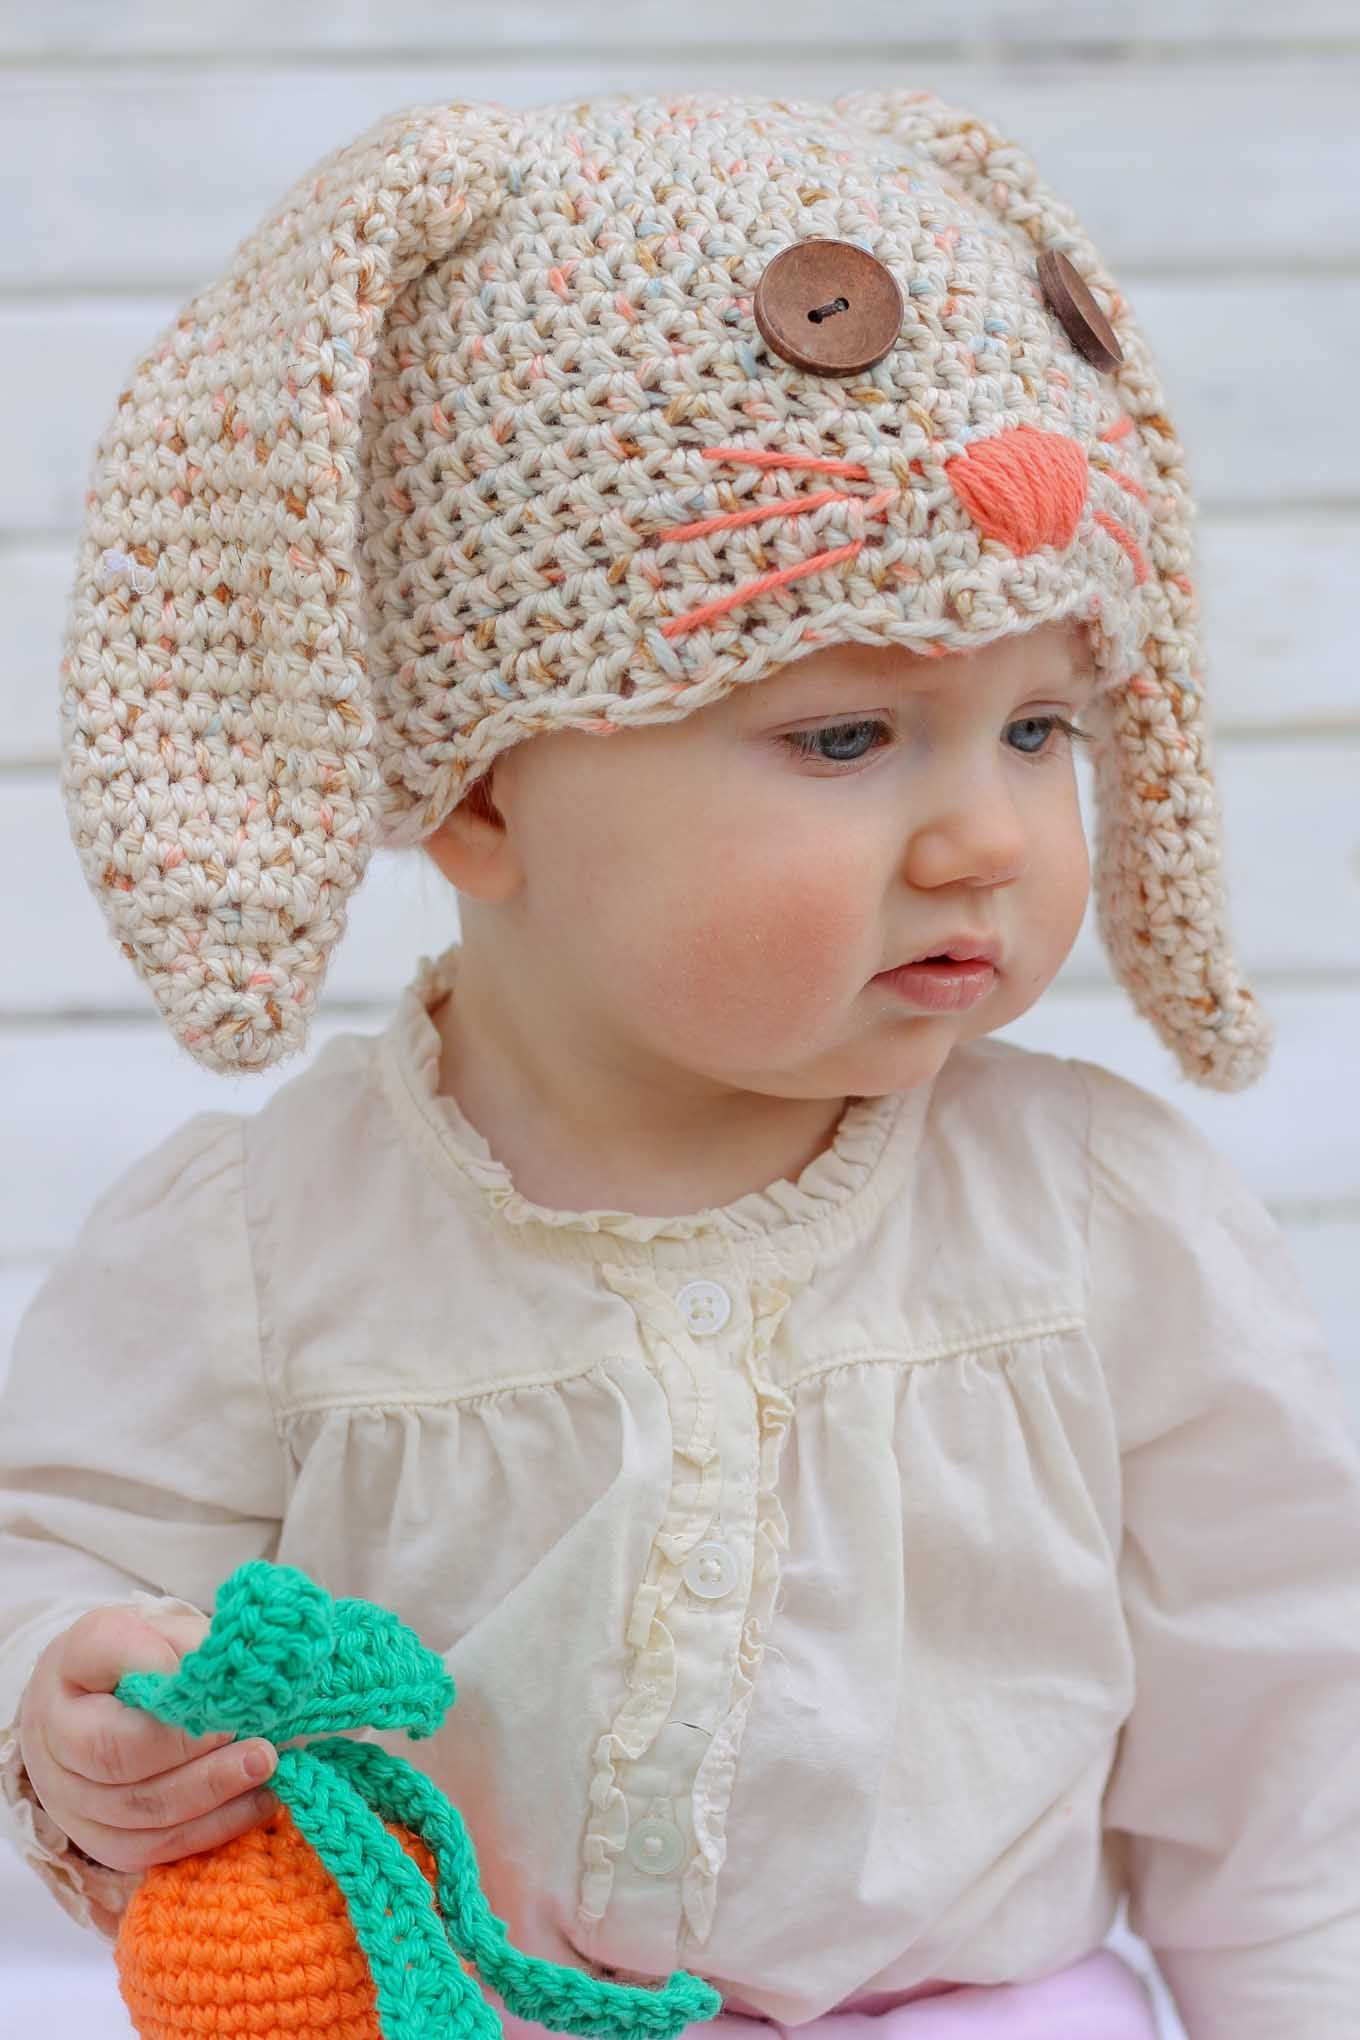 Free crochet bunny hat pattern newborn toddler crochet bunny free crochet bunny hat pattern newborn toddler bankloansurffo Image collections